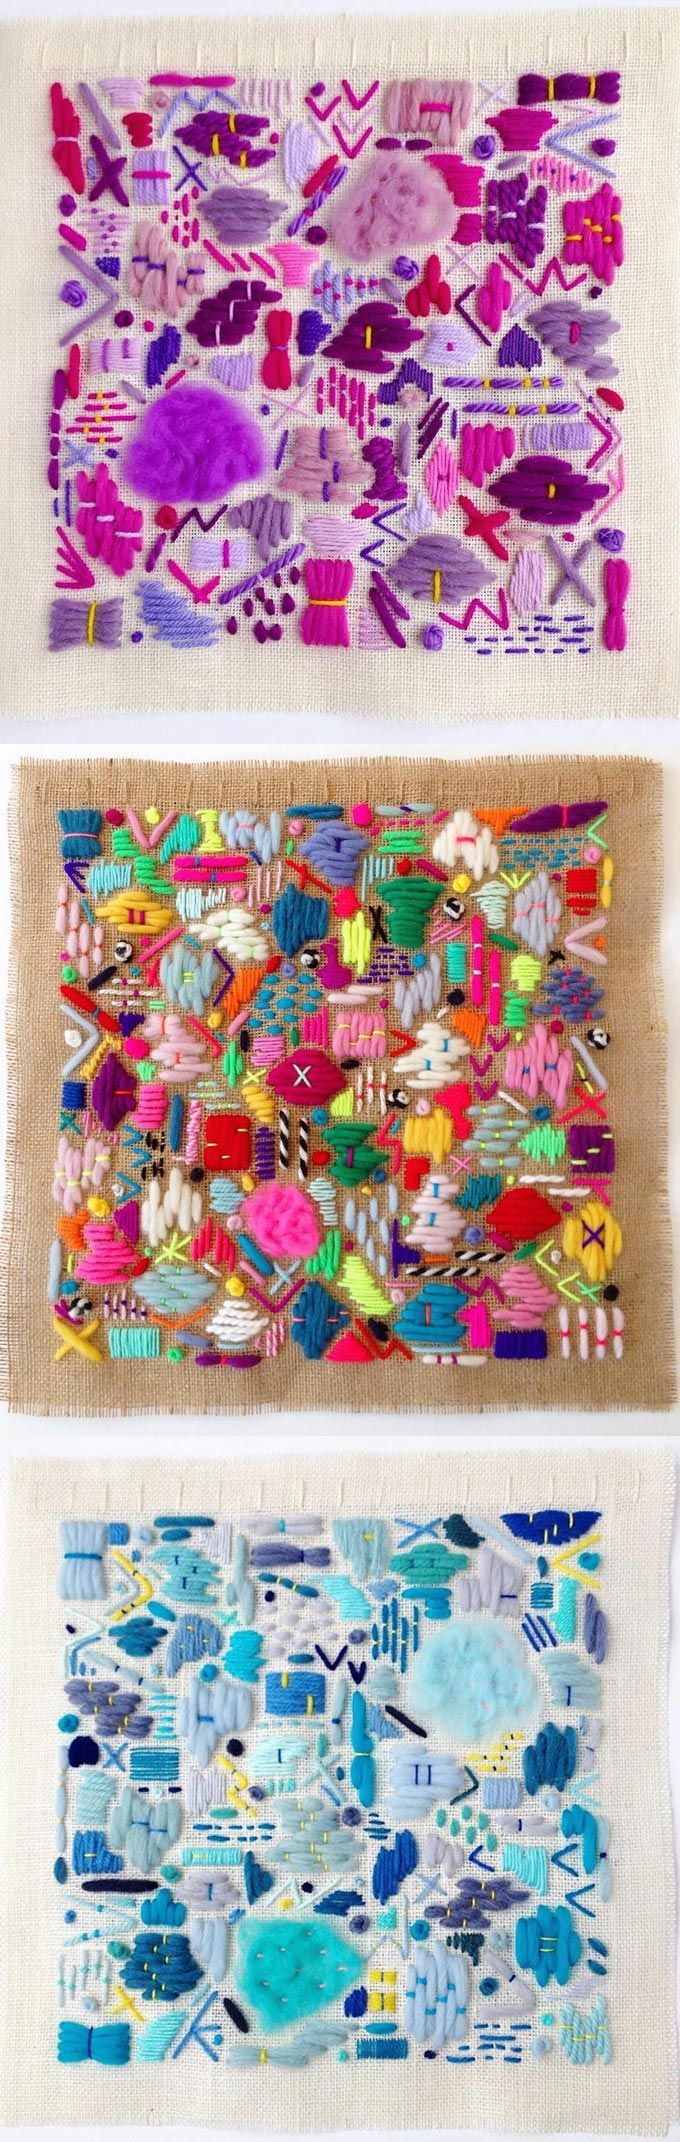 Elizabeth Pawle's scattering embroideries remind me doodles made with thread…